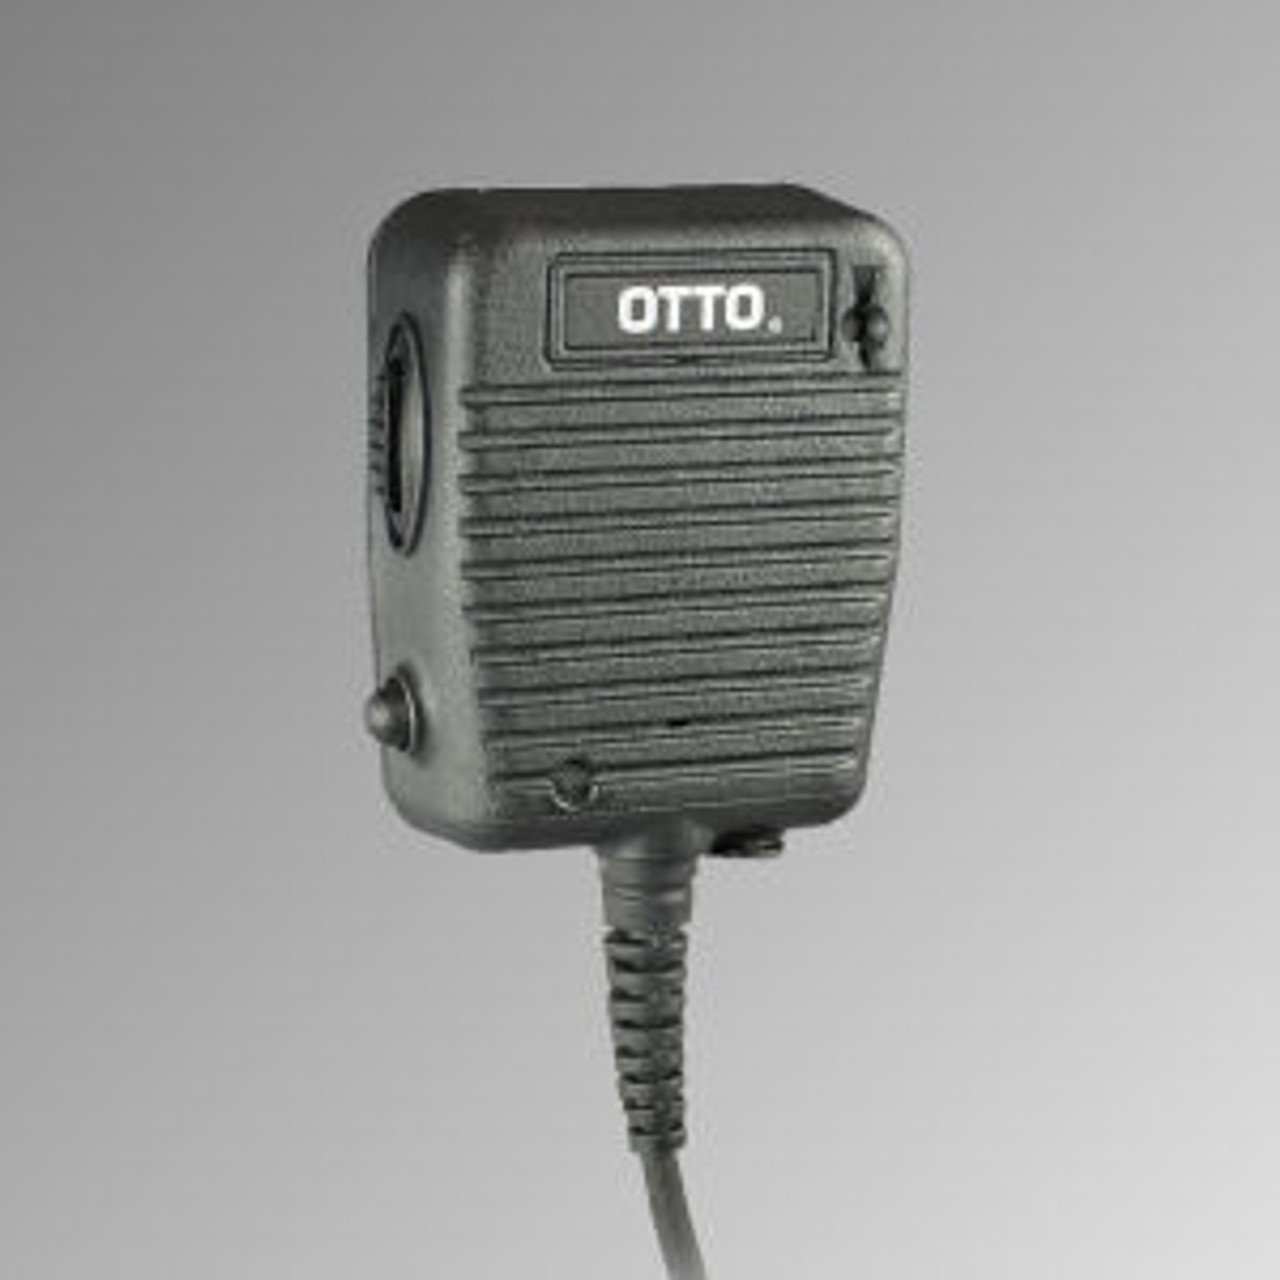 Otto Storm Mic For Bendix King (All Models)